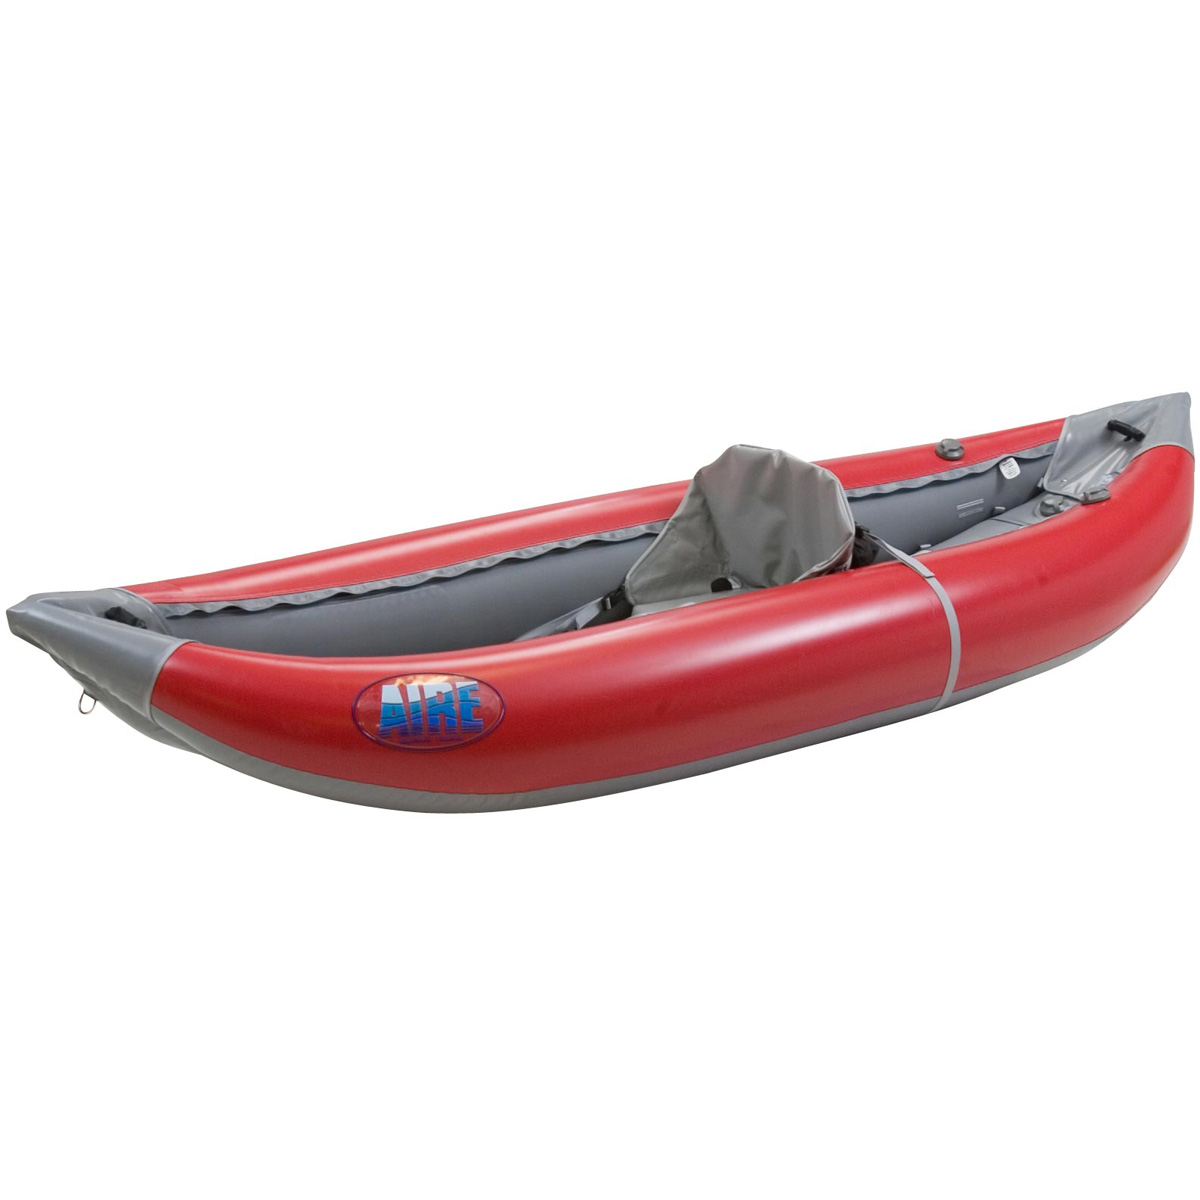 www.rentingglobal.com, renting, global, Singapore, aire outfitter,aire kayak,solo kayak,1 person kayak,kayak,outfitter kayak, Aire Outfitter 1 Person Kayak Red